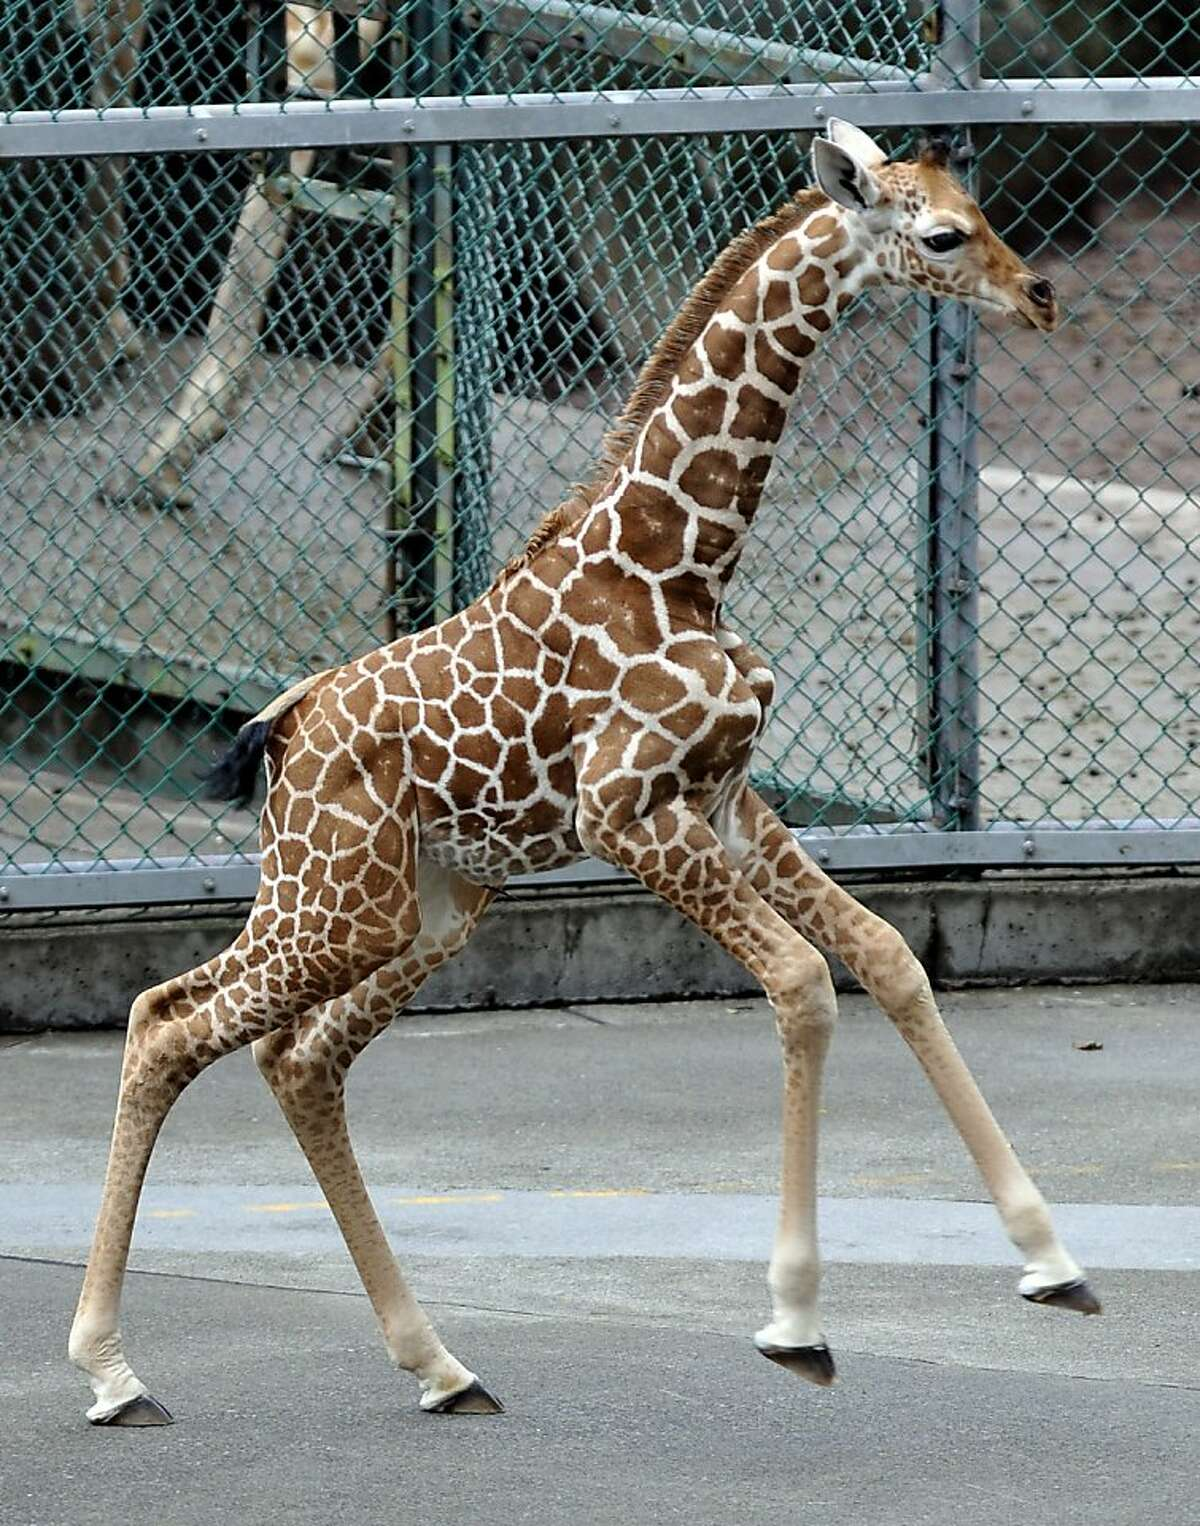 This picture taken on August 21, 2011 shows a baby giraffe running in her enclosure at Tama Zoological Park in Tokyo . The baby giraffe was born on August 6 at the zoo. AFP PHOTO / KAZUHIRO NOGI (Photo credit should read KAZUHIRO NOGI/AFP/Getty Images)